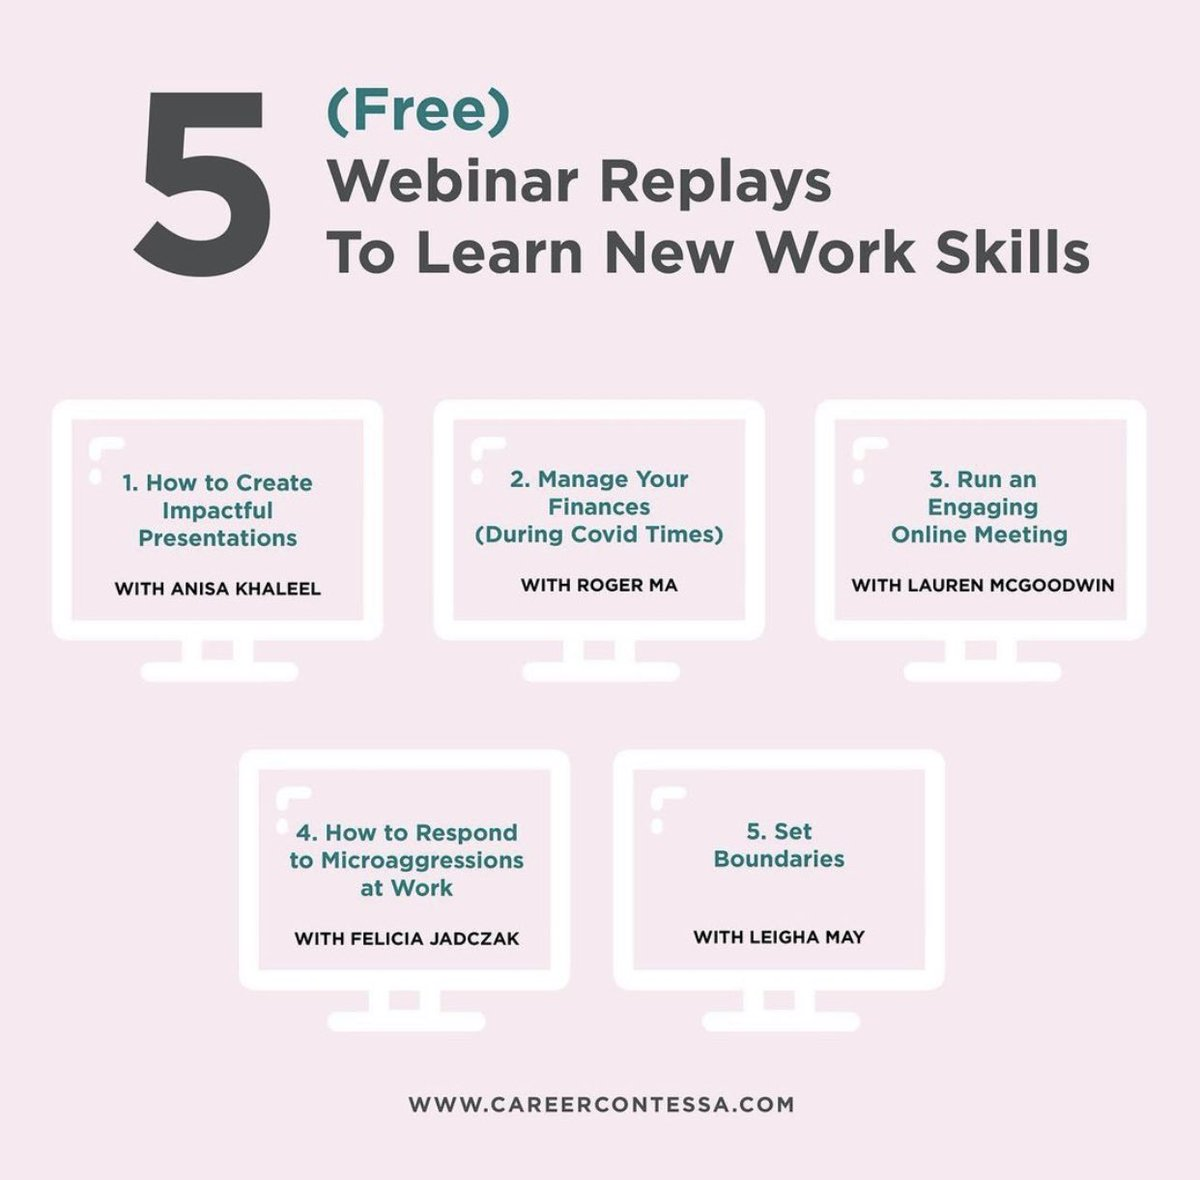 U.S. employers cut 140k jobs in December. Women accounted for all the losses. Kudos to @CareerContessa for offering FREE webinars on #career recovery, #leadership, setting boundaries, networking & responding to micro aggressions:  #sundayvibes #careeradvice